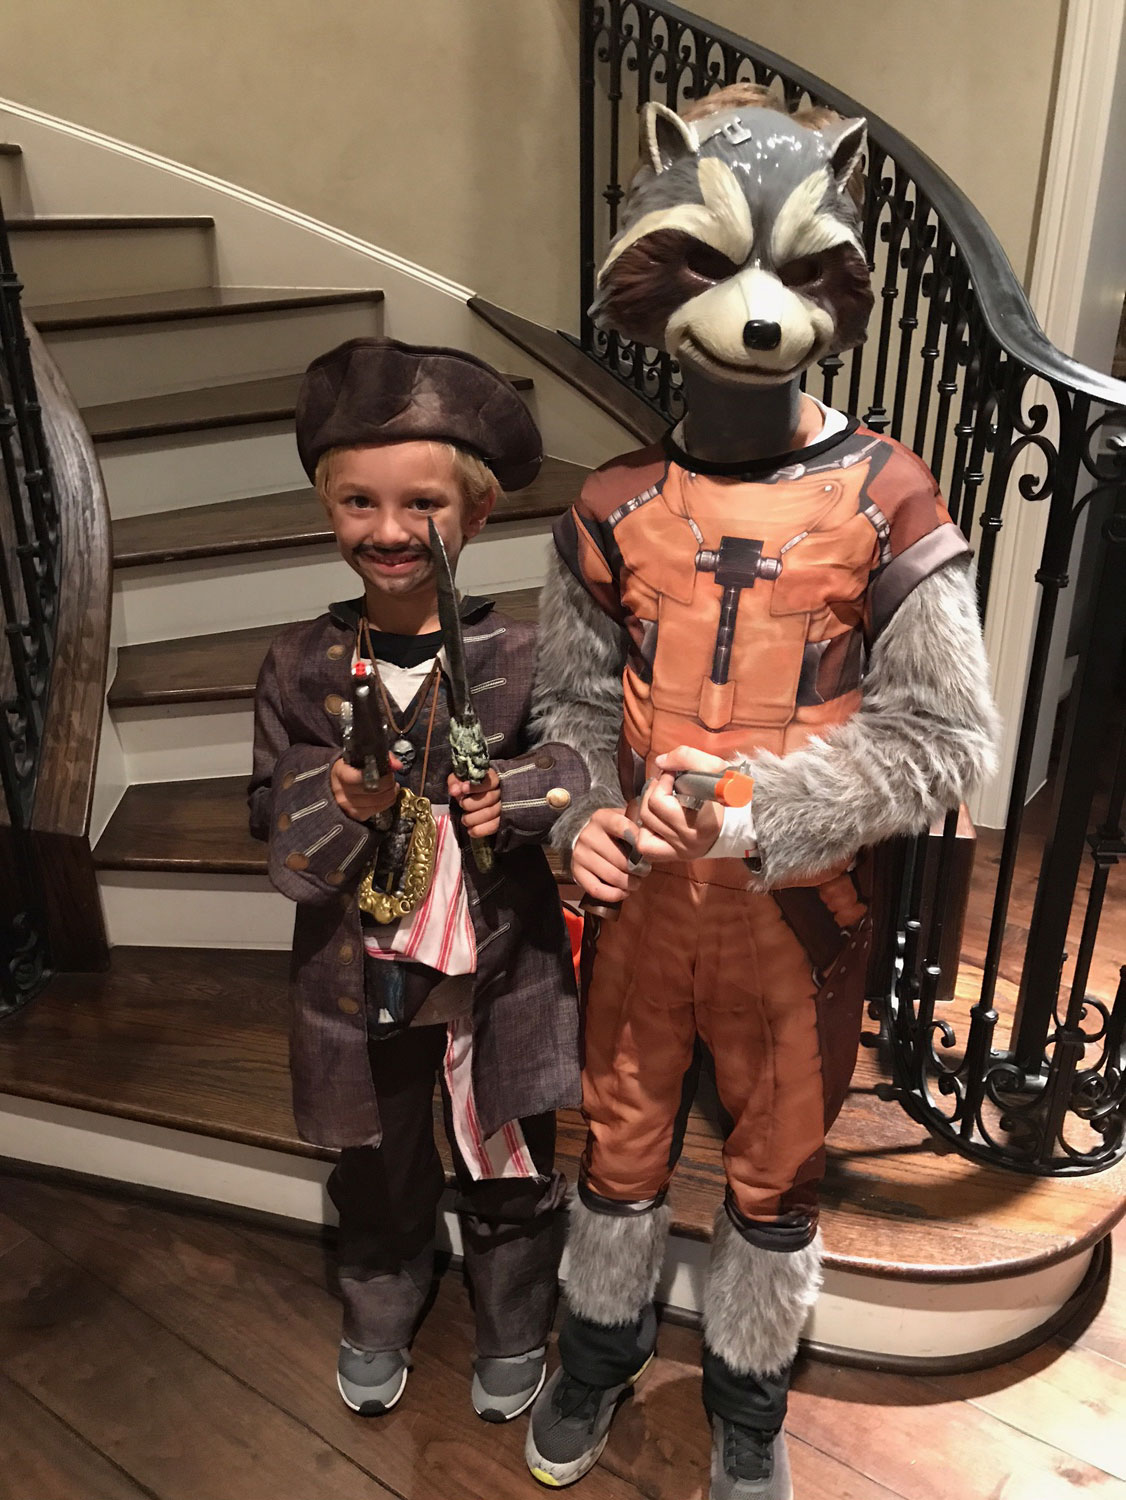 "<div class=""meta image-caption""><div class=""origin-logo origin-image none""><span>none</span></div><span class=""caption-text"">Anchor Ilona Carson's sons Pierce (left) and Reid went trick-or-treating dressed as Jack Sparrow and Rocket Raccoon for Halloween.</span></div>"